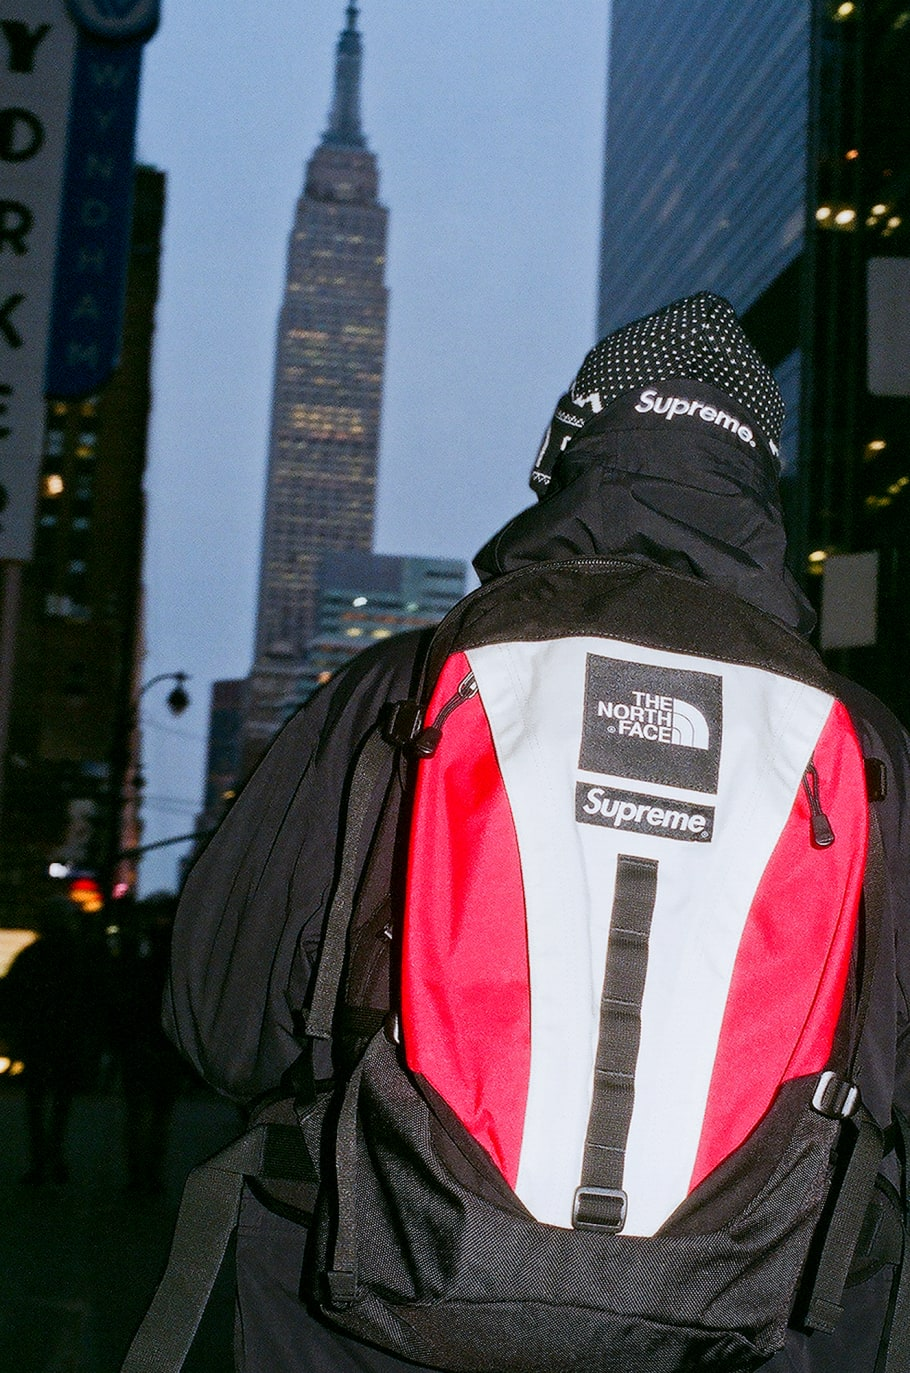 bfaab46db73 Supreme Launches Fall 2018 Collection With North Face | Complex